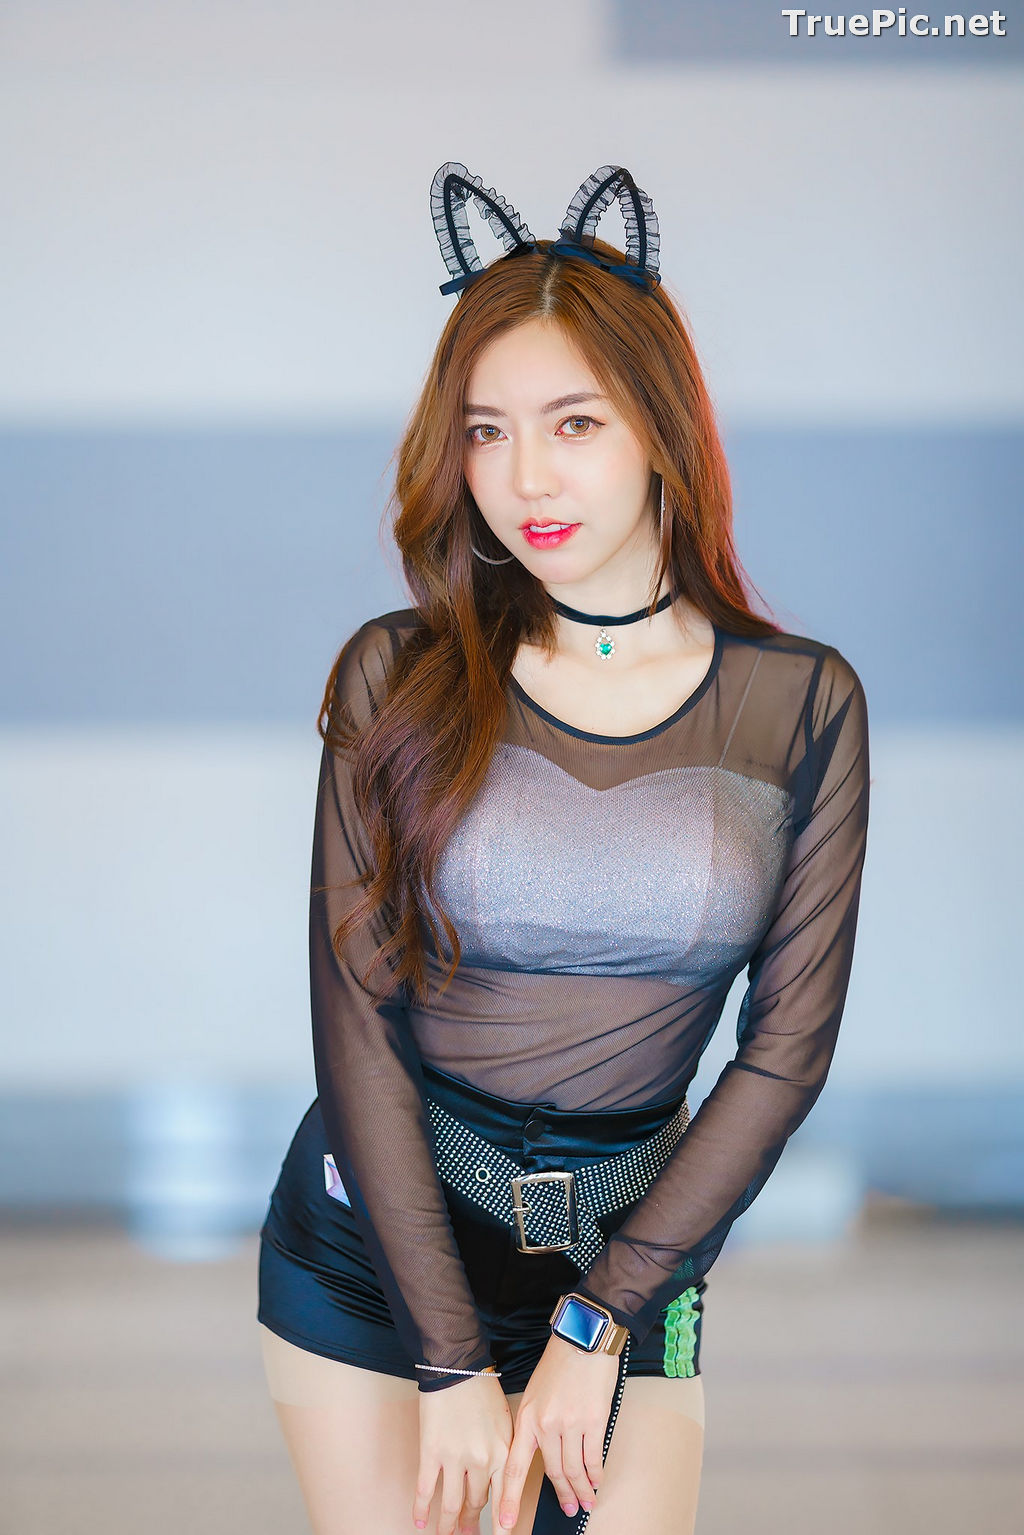 Image Thailand Model - Champ Phawida - Cute Black Cat - TruePic.net - Picture-10